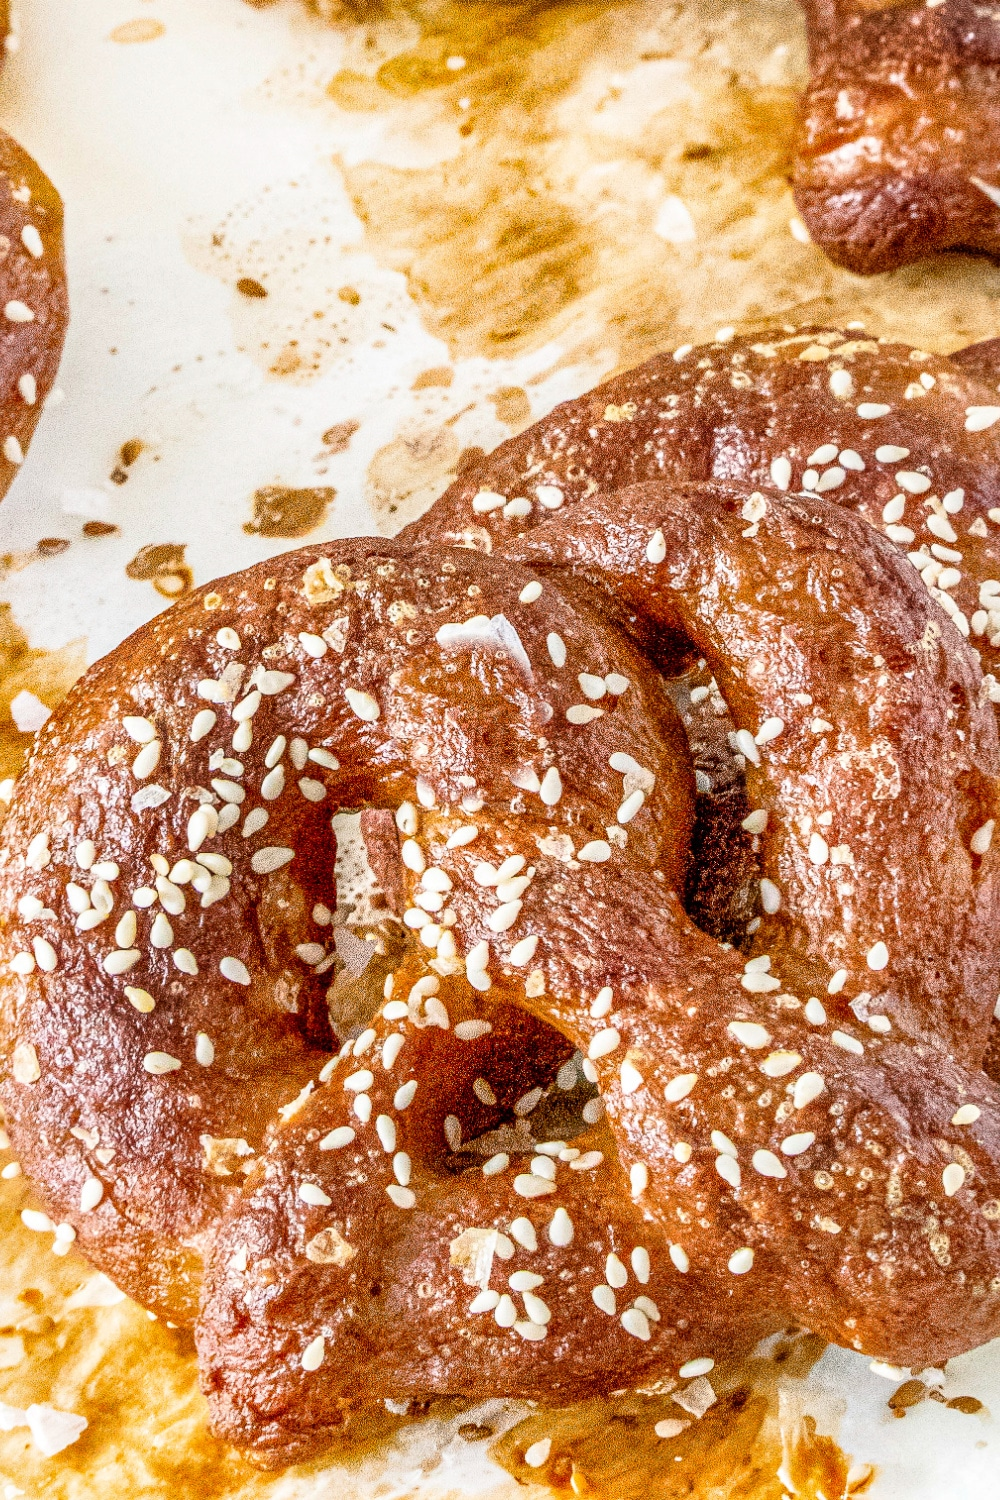 A Soft Beer Pretzel fresh from the oven garnished with salt and sesame seeds.